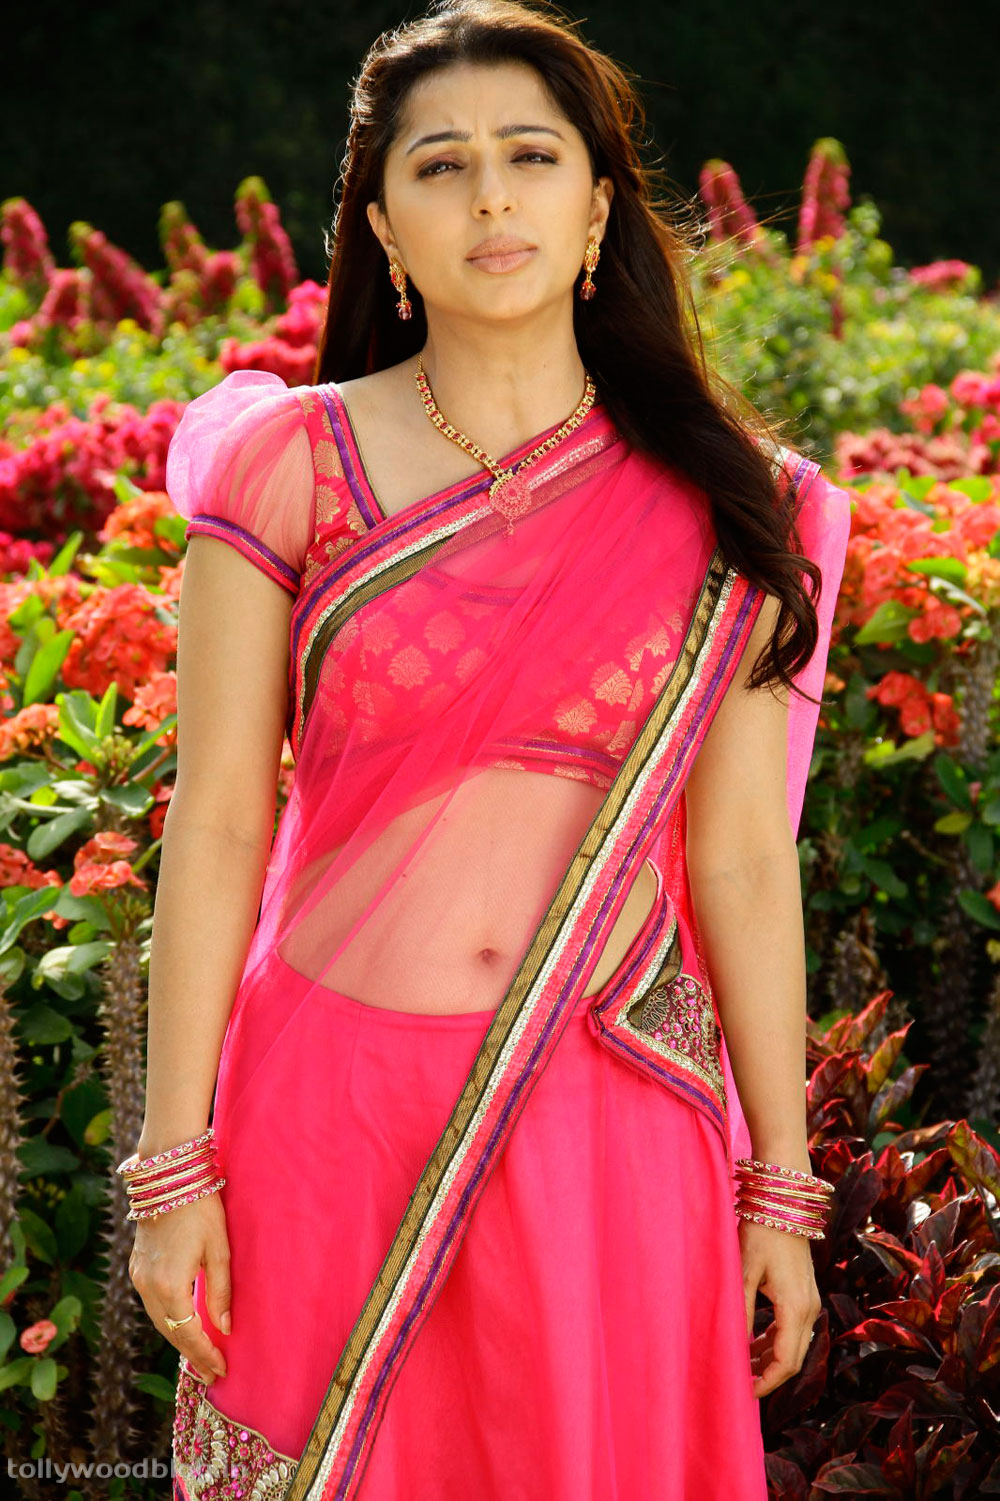 bhoomika photos from april fool movie